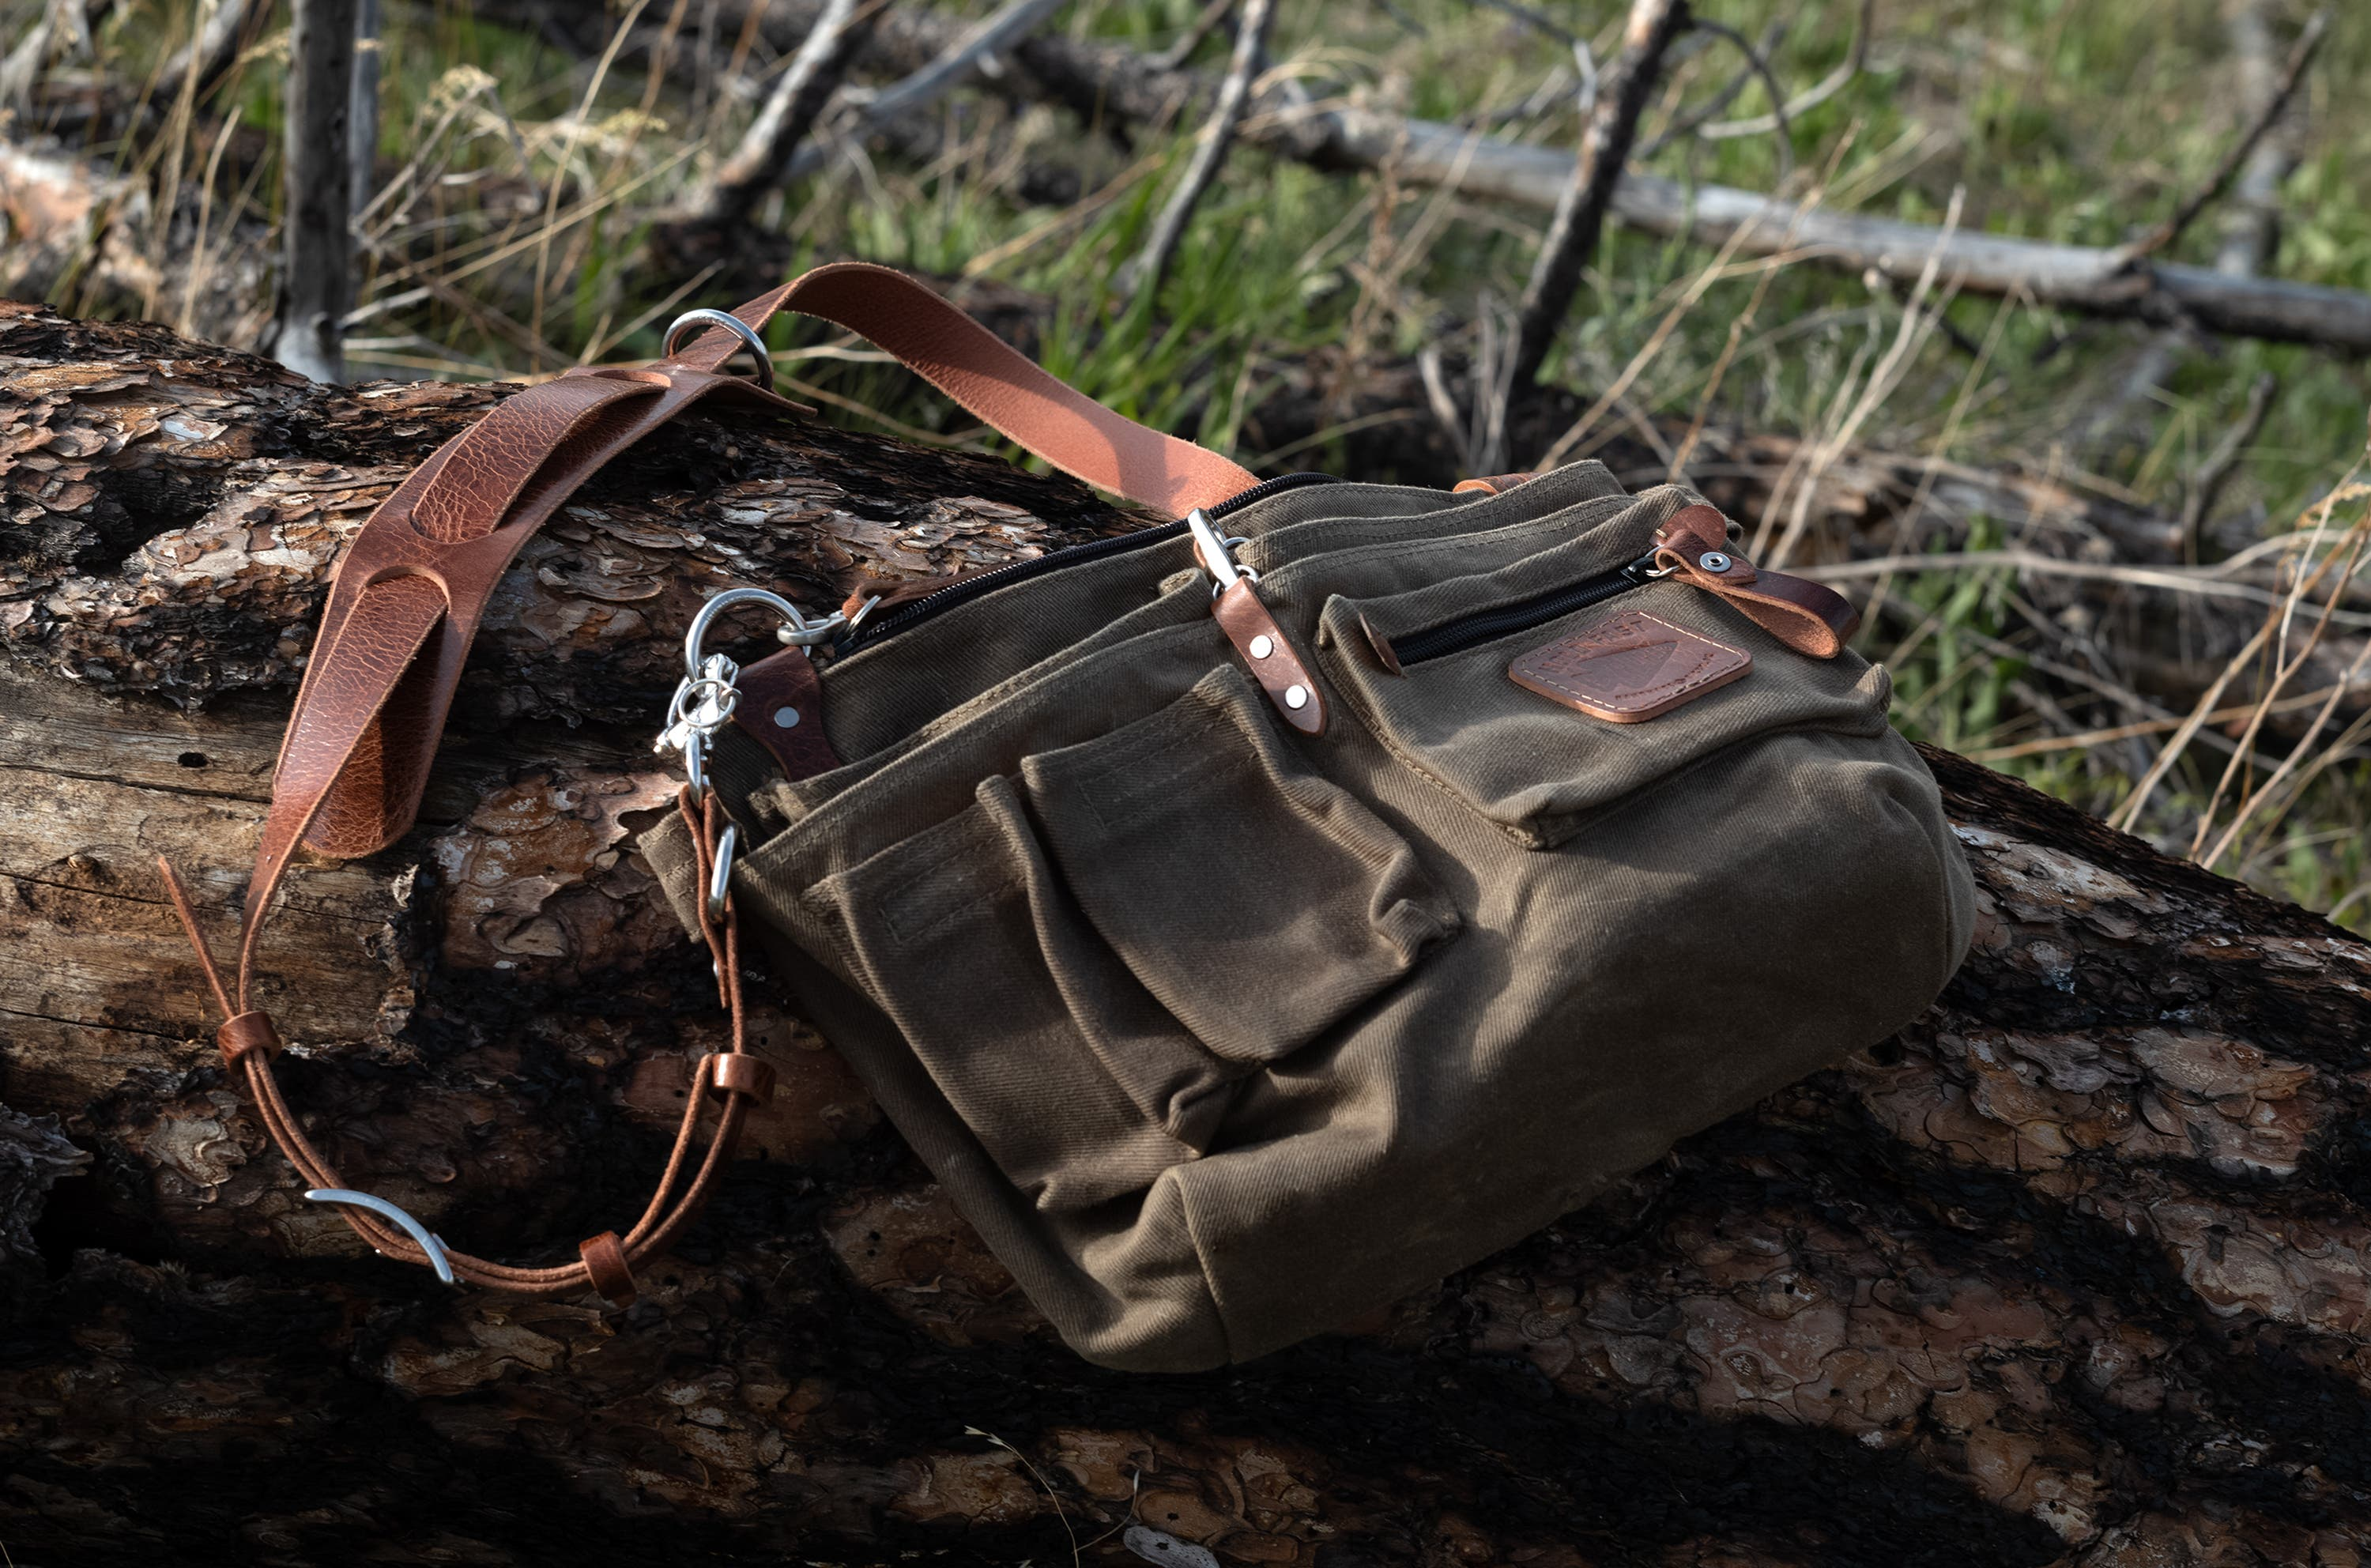 It's Pretty Great! HoldFast Gear Explorer Quiver Lens Bag Review